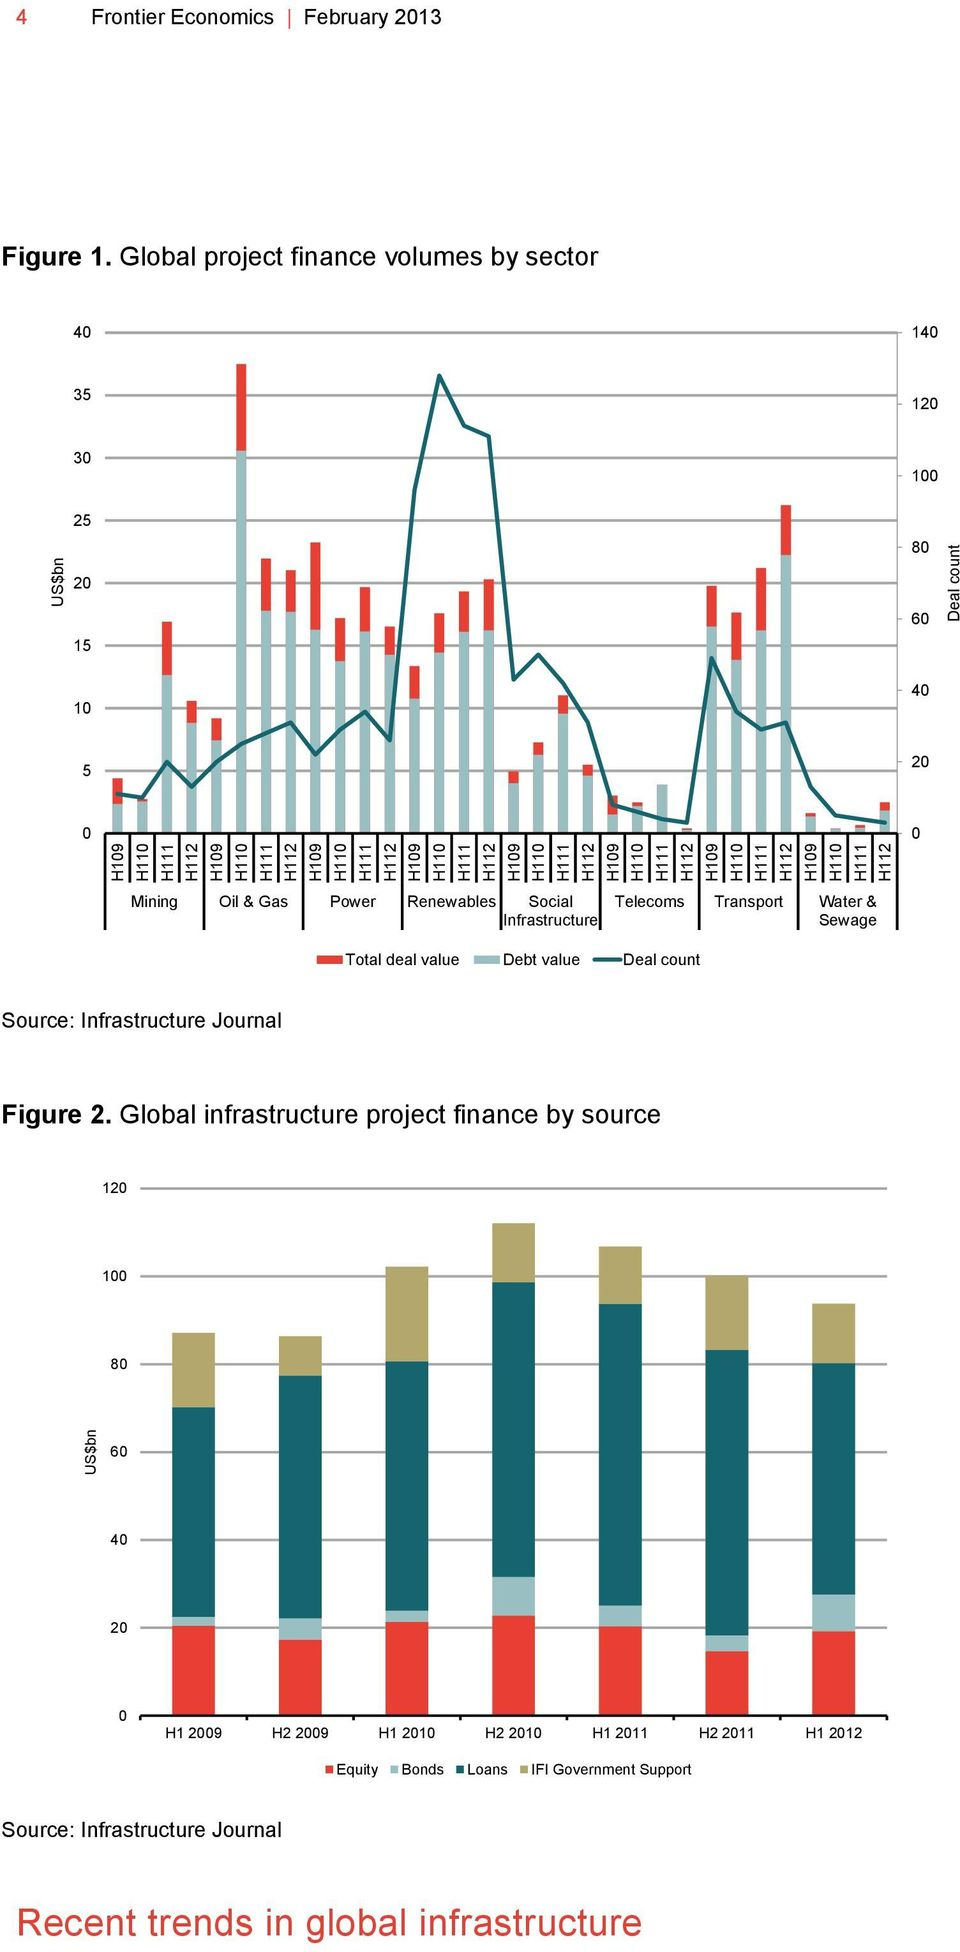 Global project finance volumes by sector 40 140 35 120 30 25 100 80 20 15 10 60 40 5 20 0 0 Mining Oil & Gas Power Renewables Social Infrastructure Telecoms Transport